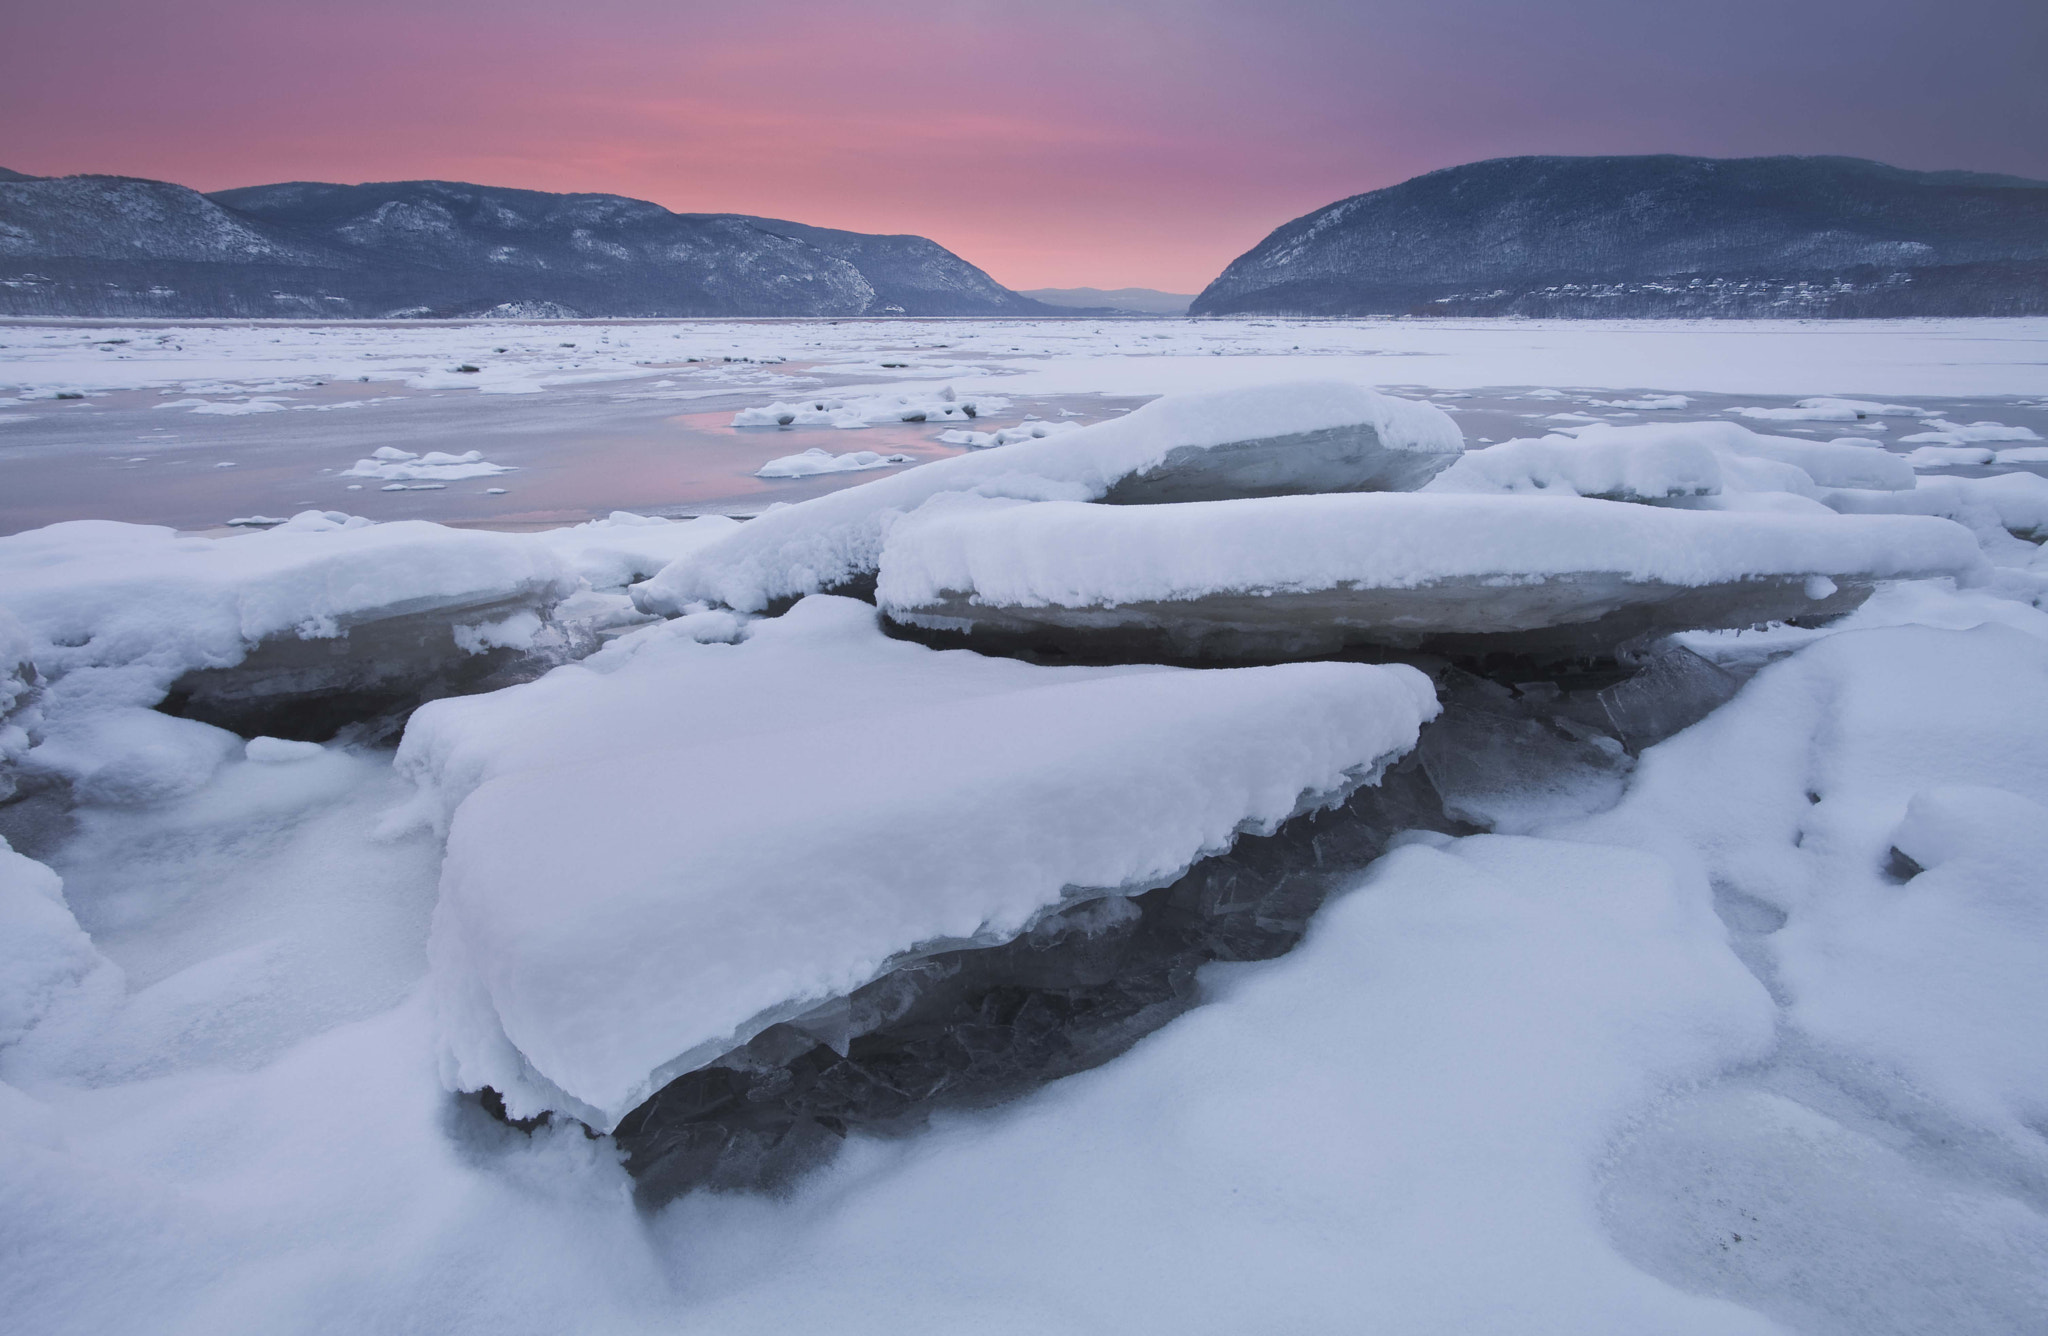 Photograph Fire and Ice, Hudson Valley, NY, 2011 by Christopher Wisker on 500px